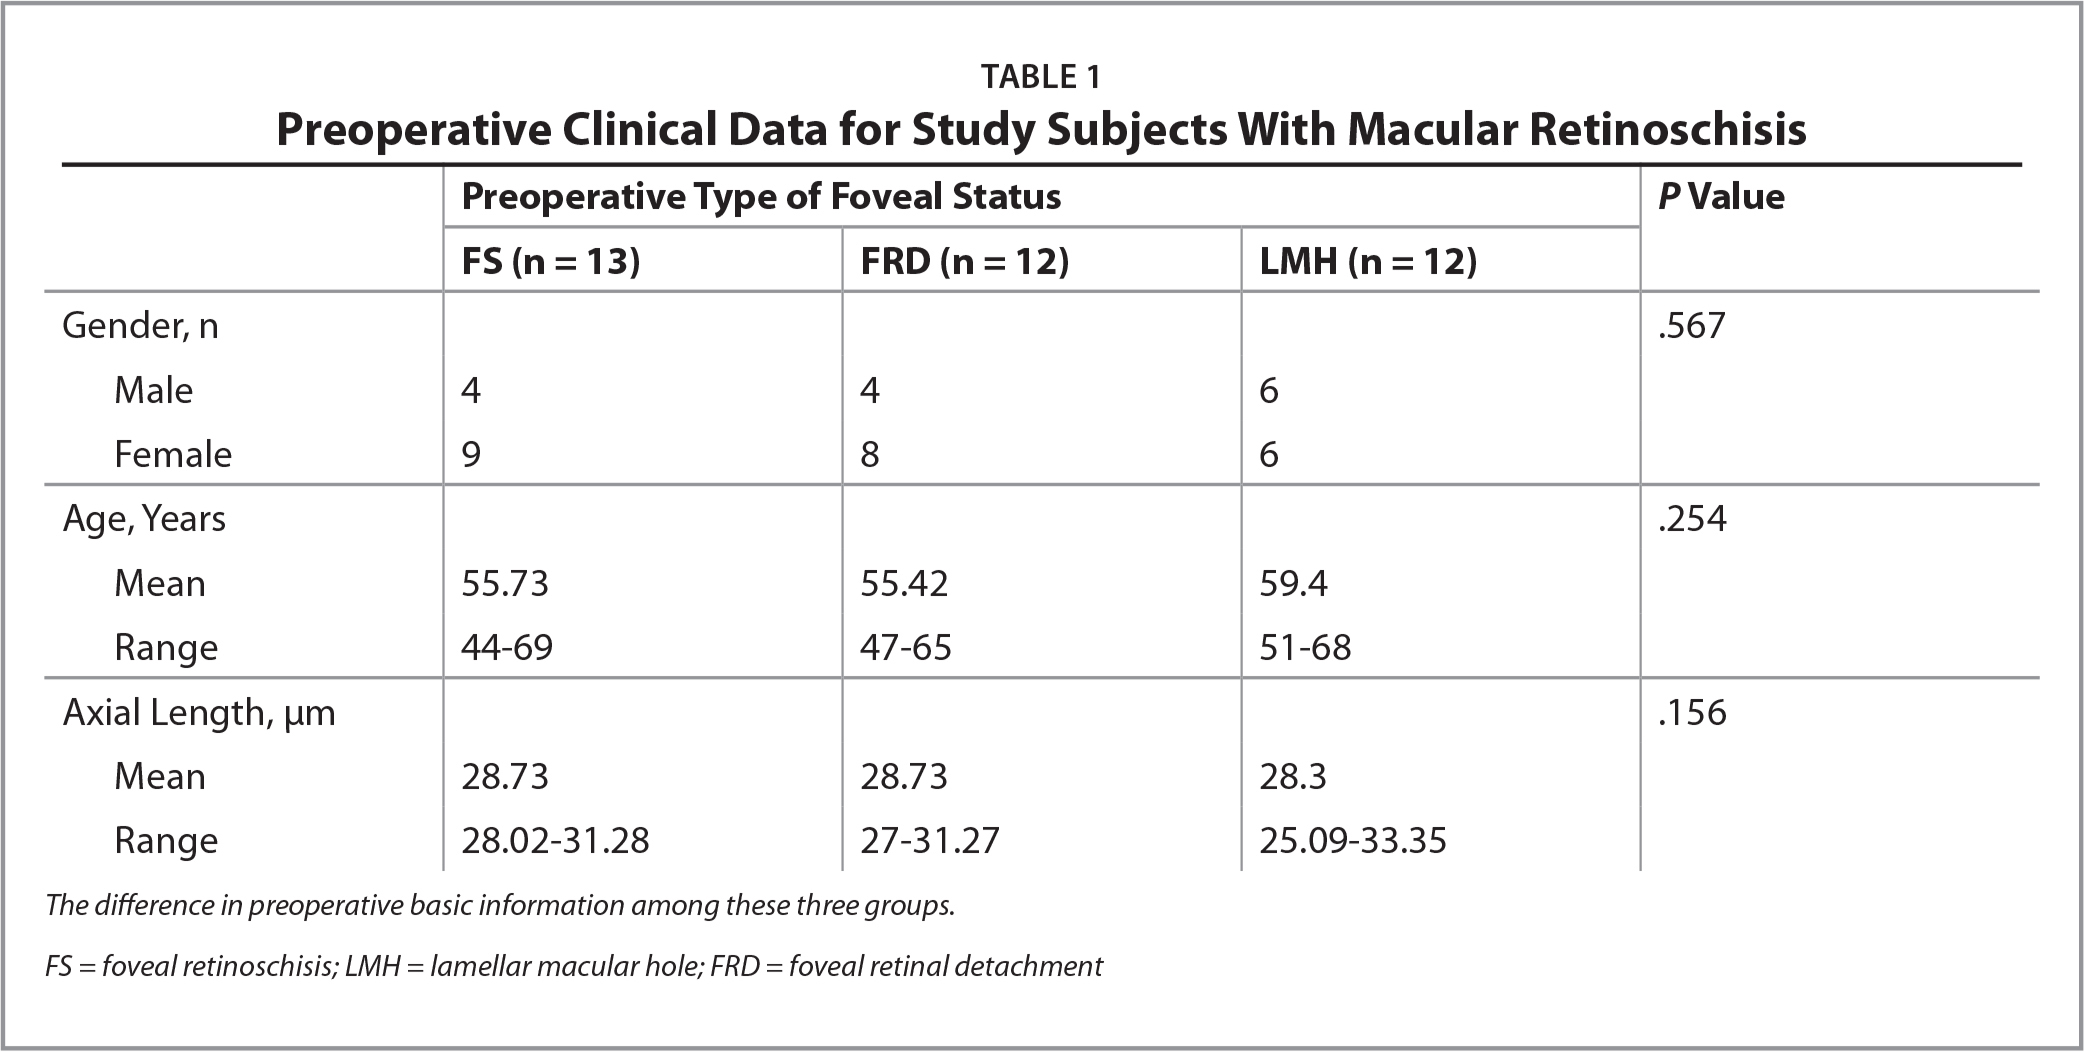 Preoperative Clinical Data for Study Subjects With Macular Retinoschisis